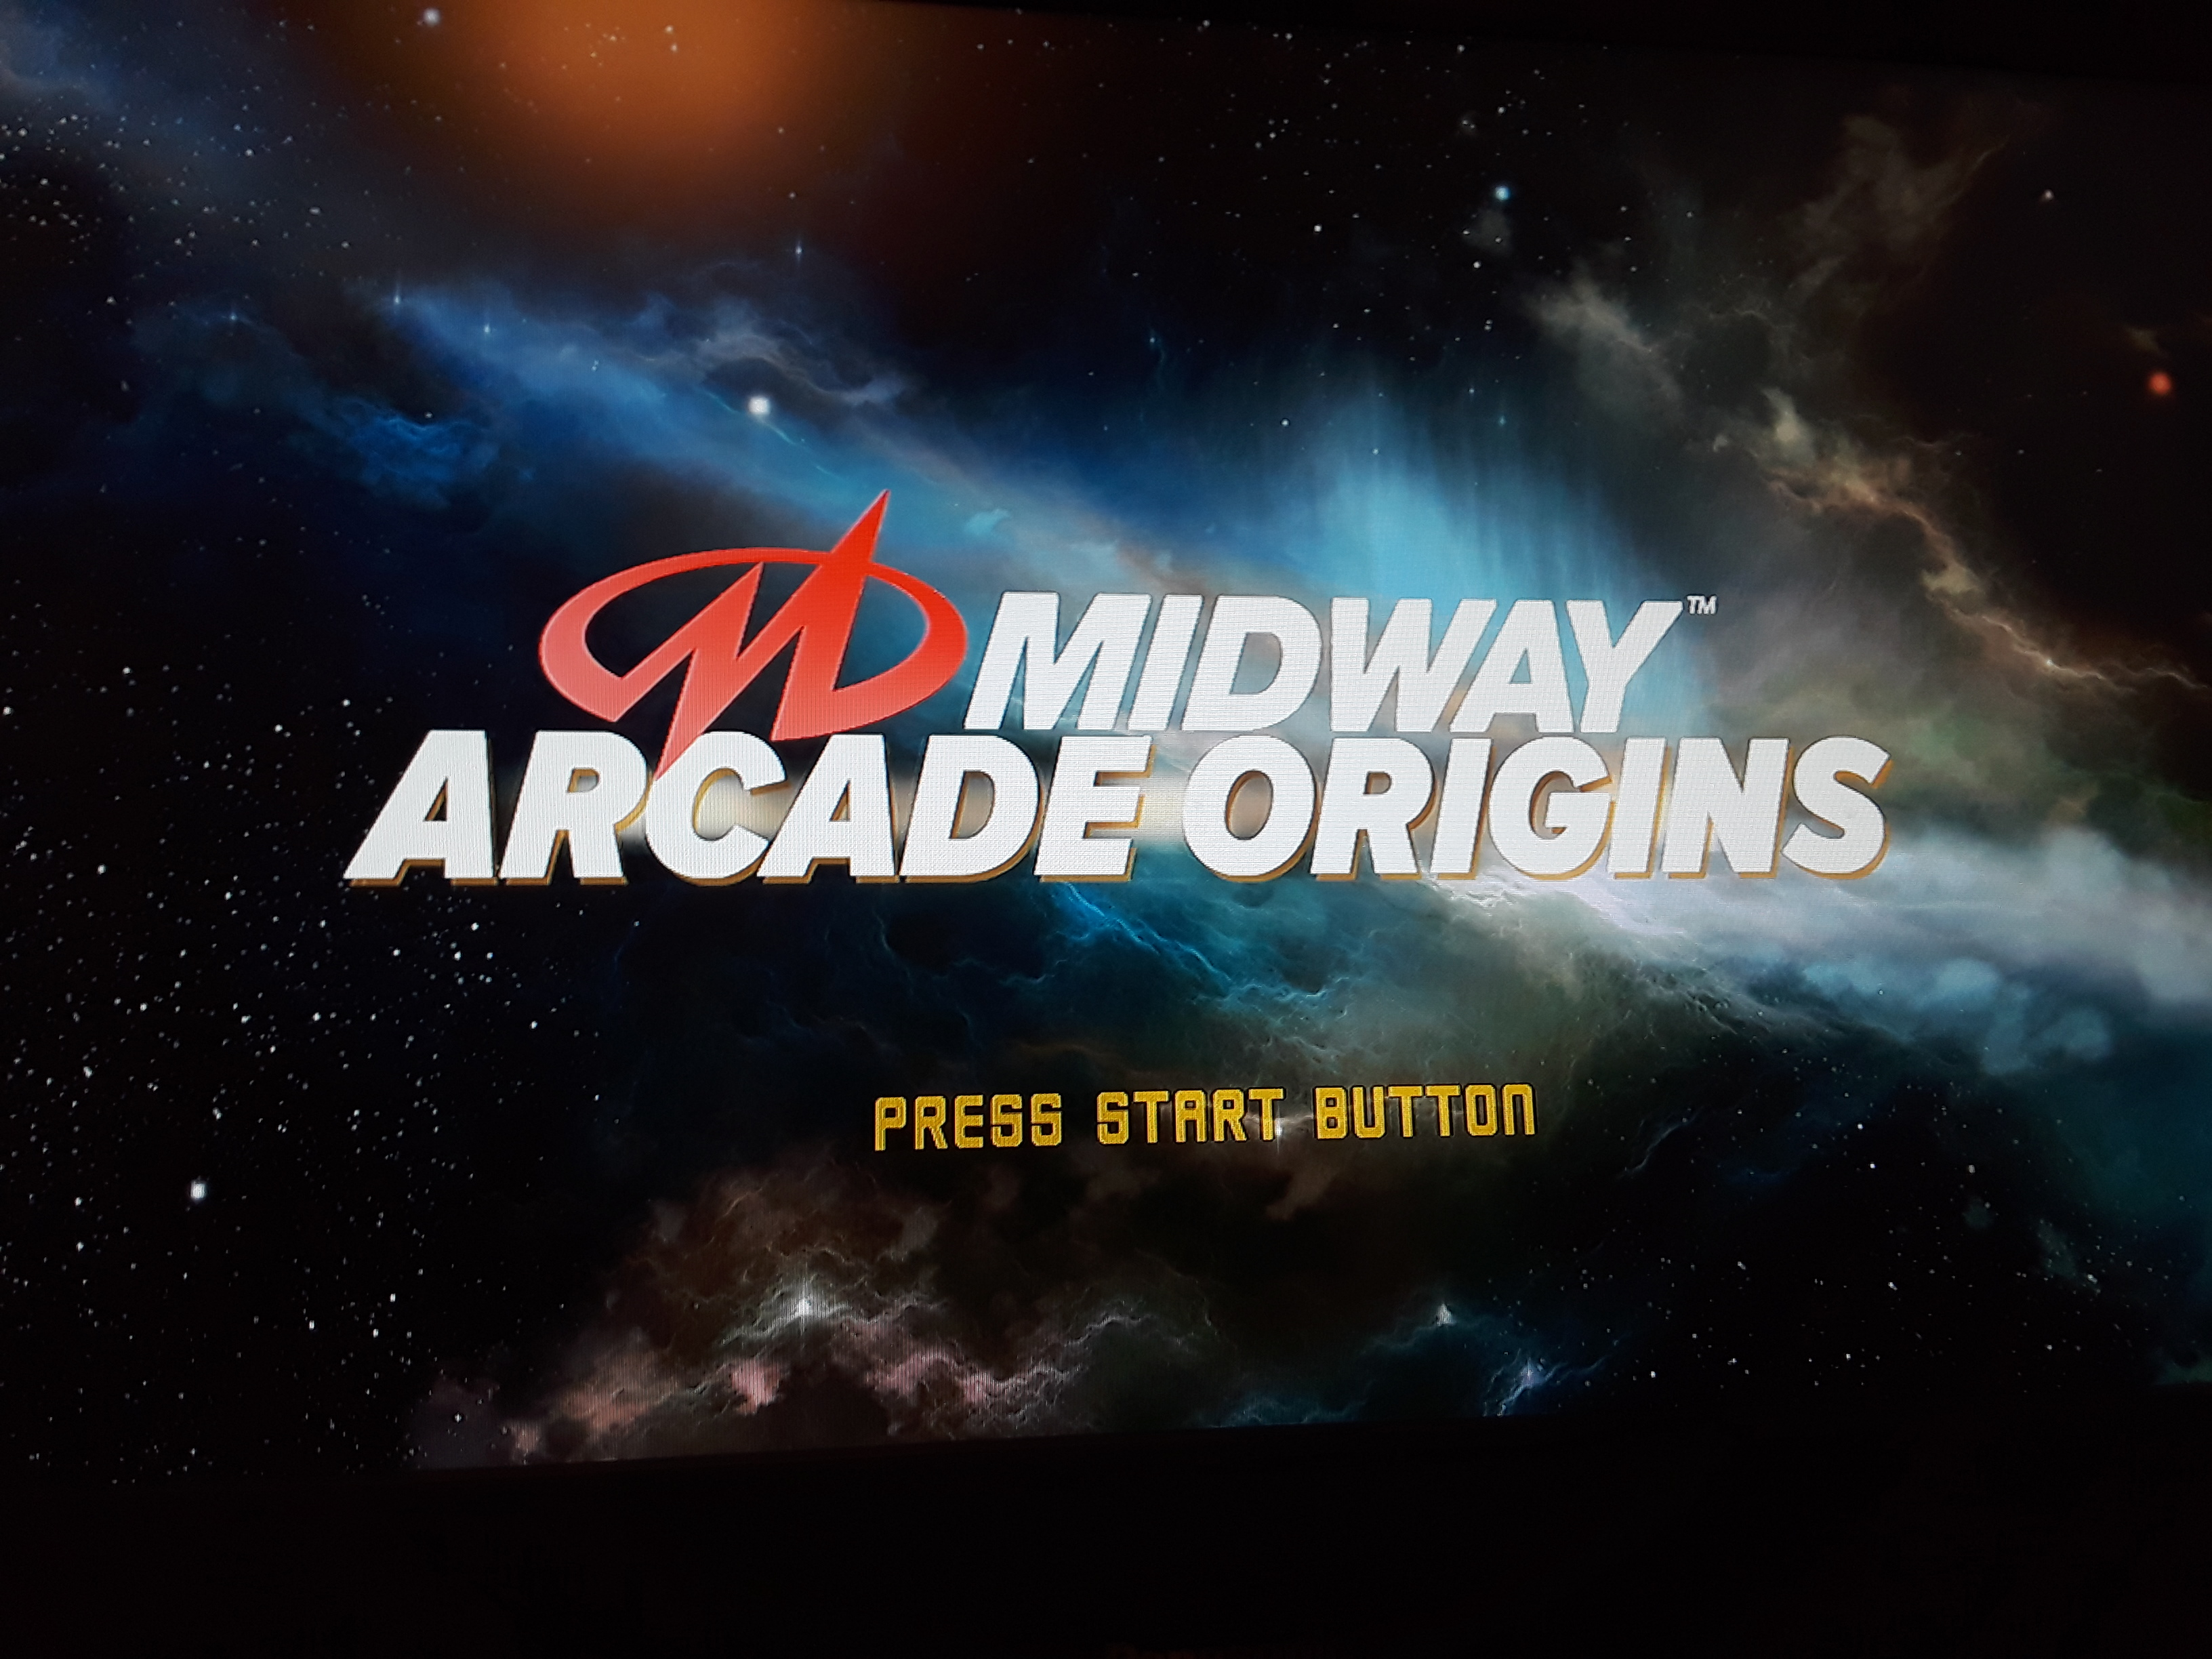 JML101582: Midway Arcade Origins: Tournament Cyberball 2072 [Point Difference] (Playstation 3) 6 points on 2018-09-12 23:52:41